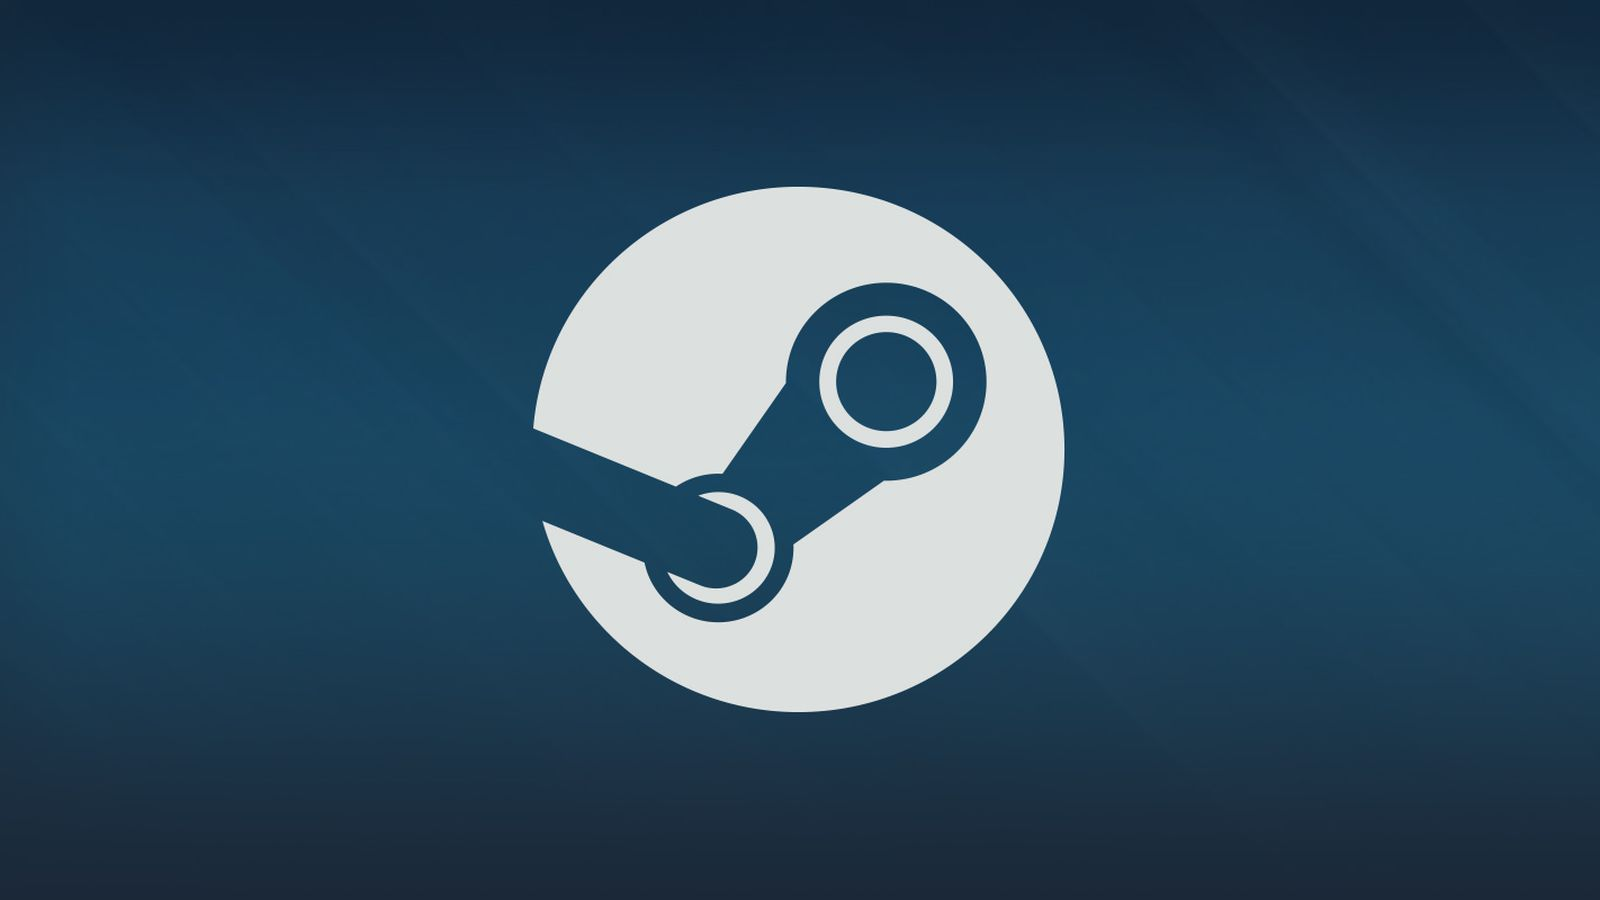 valve confirms it may restrict issuing steam keys but